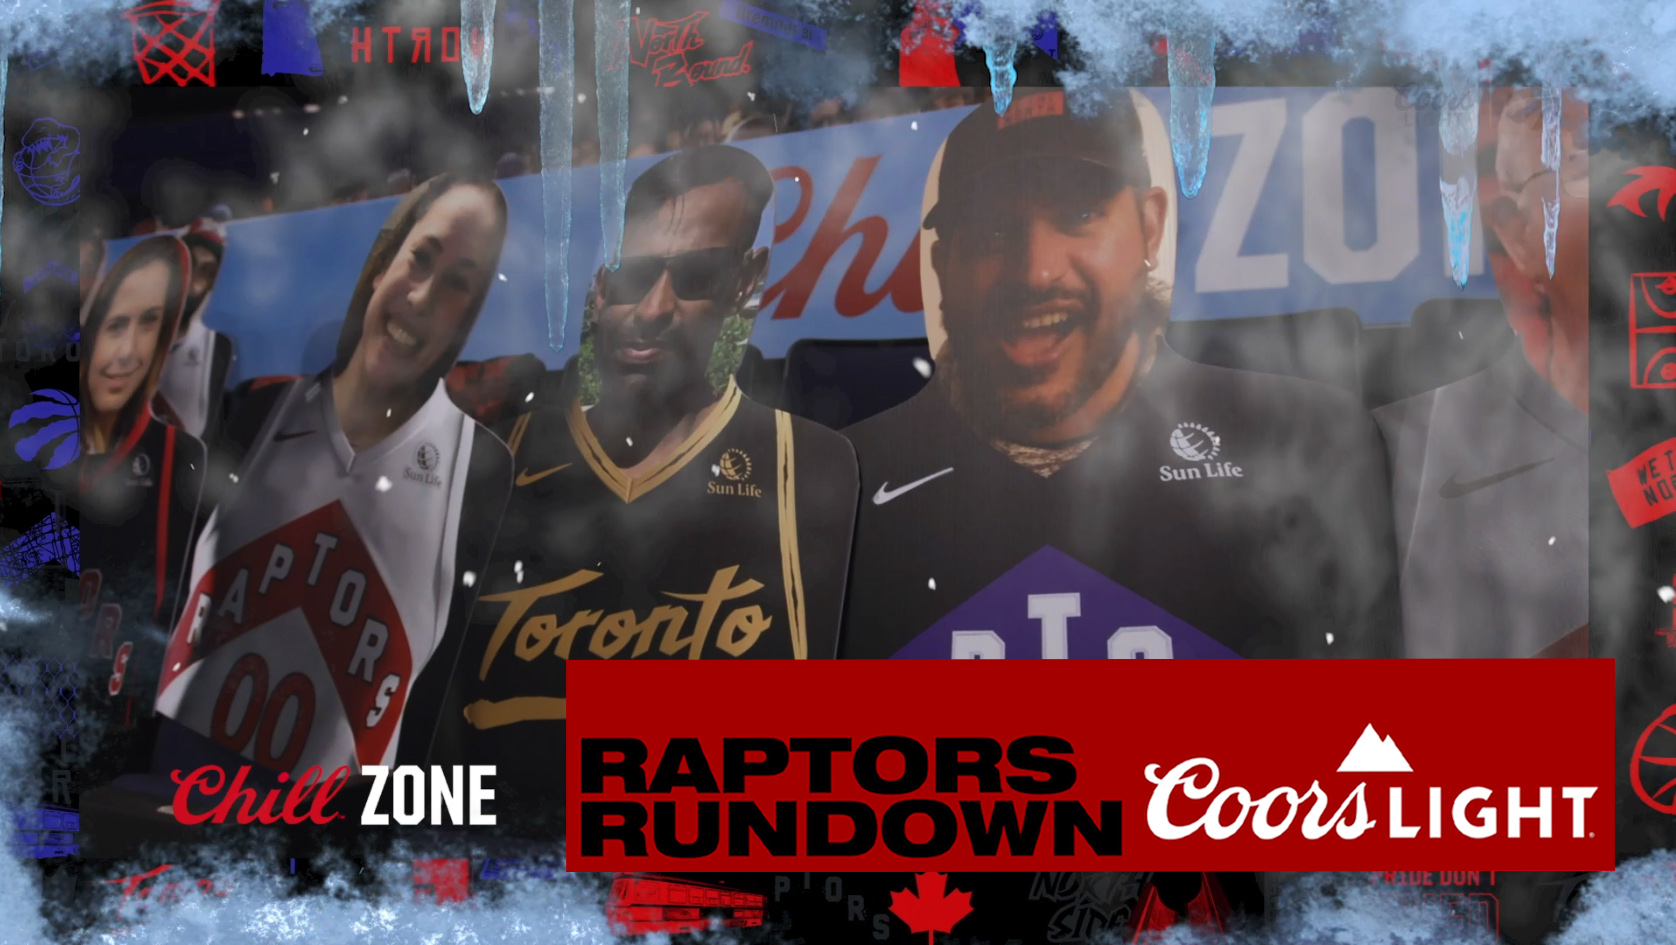 Chllin in the ChillZone - find your face | Raptors Rundown pres. by Coors Light